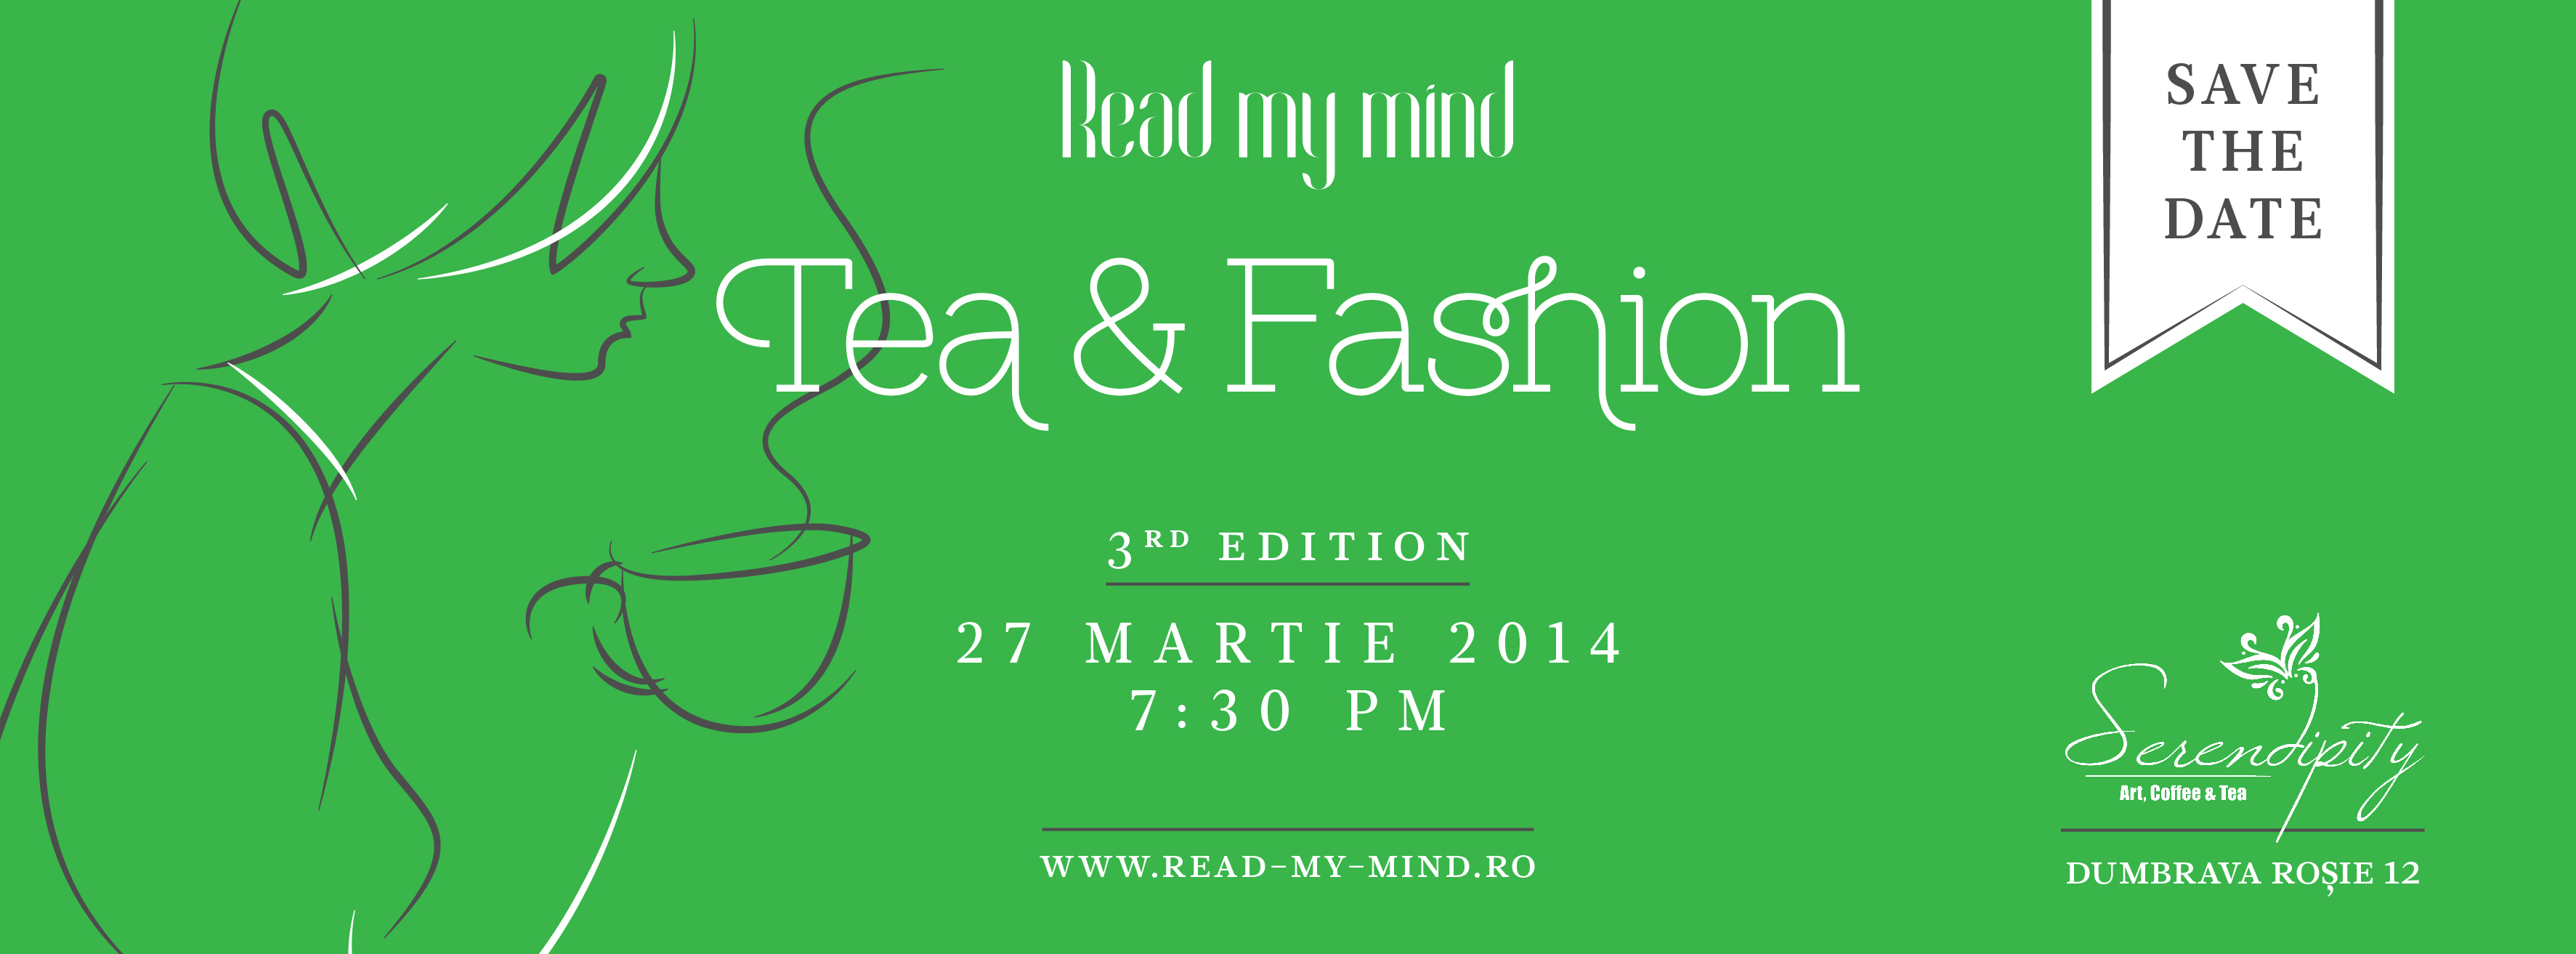 Readmymind tea&fashion 3-SAVE the date: 27 martie 2014